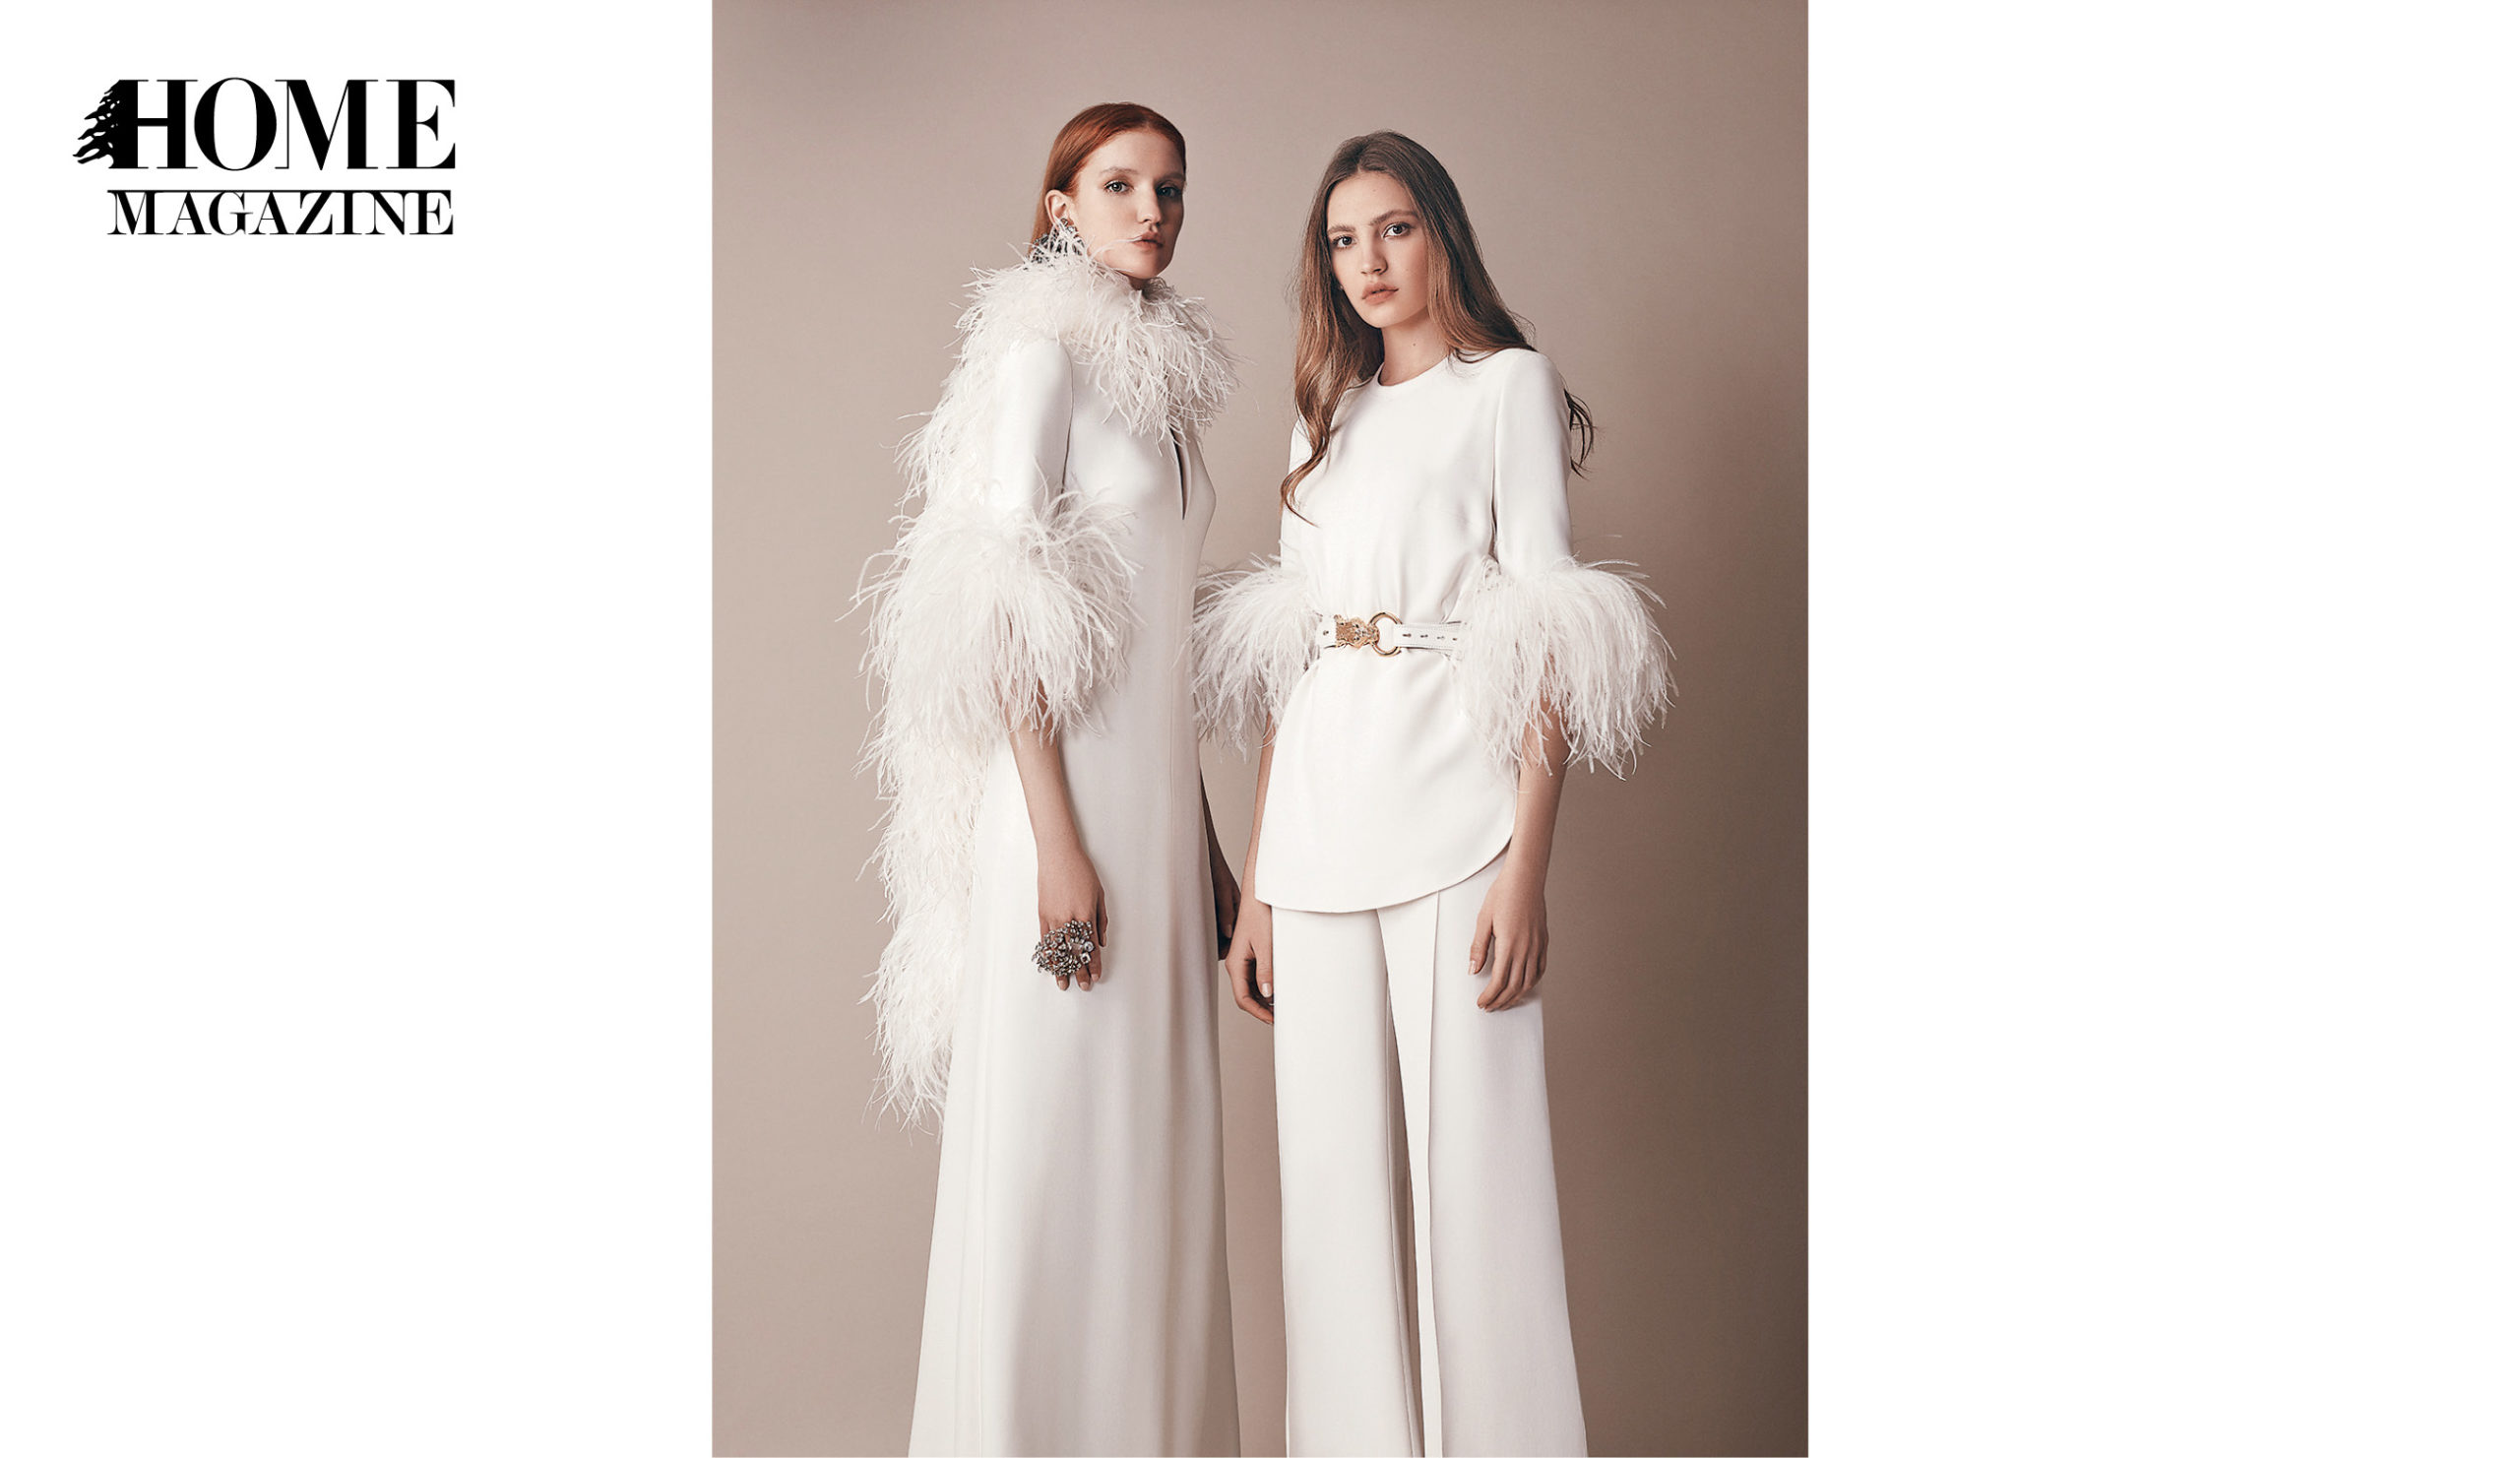 Two models wearing all white ensemble with feathers